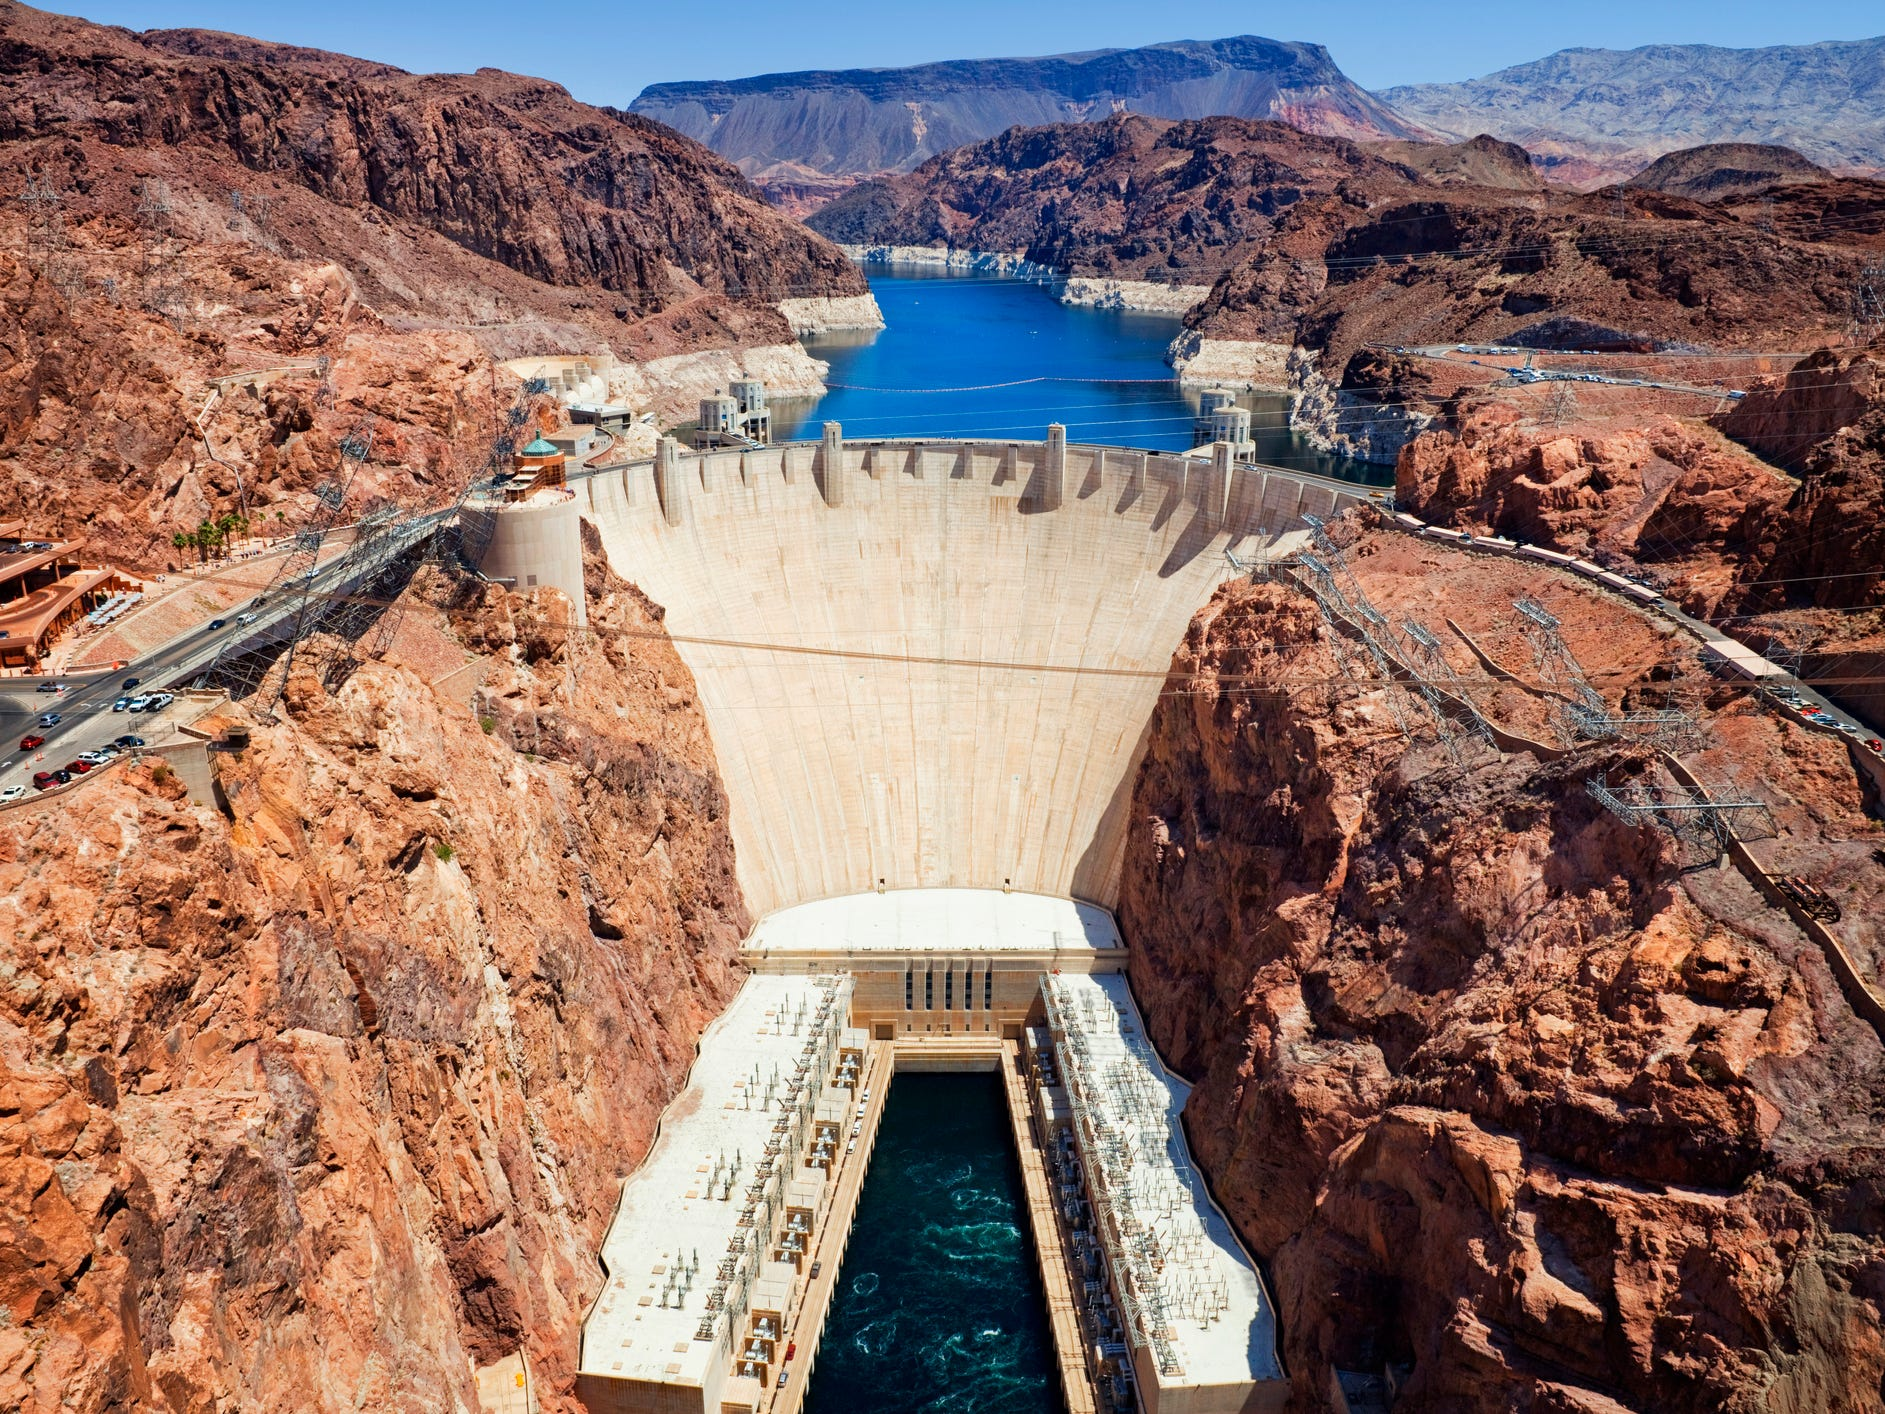 No. 47: The Hoover Dam on the border of Nevada and Arizona.